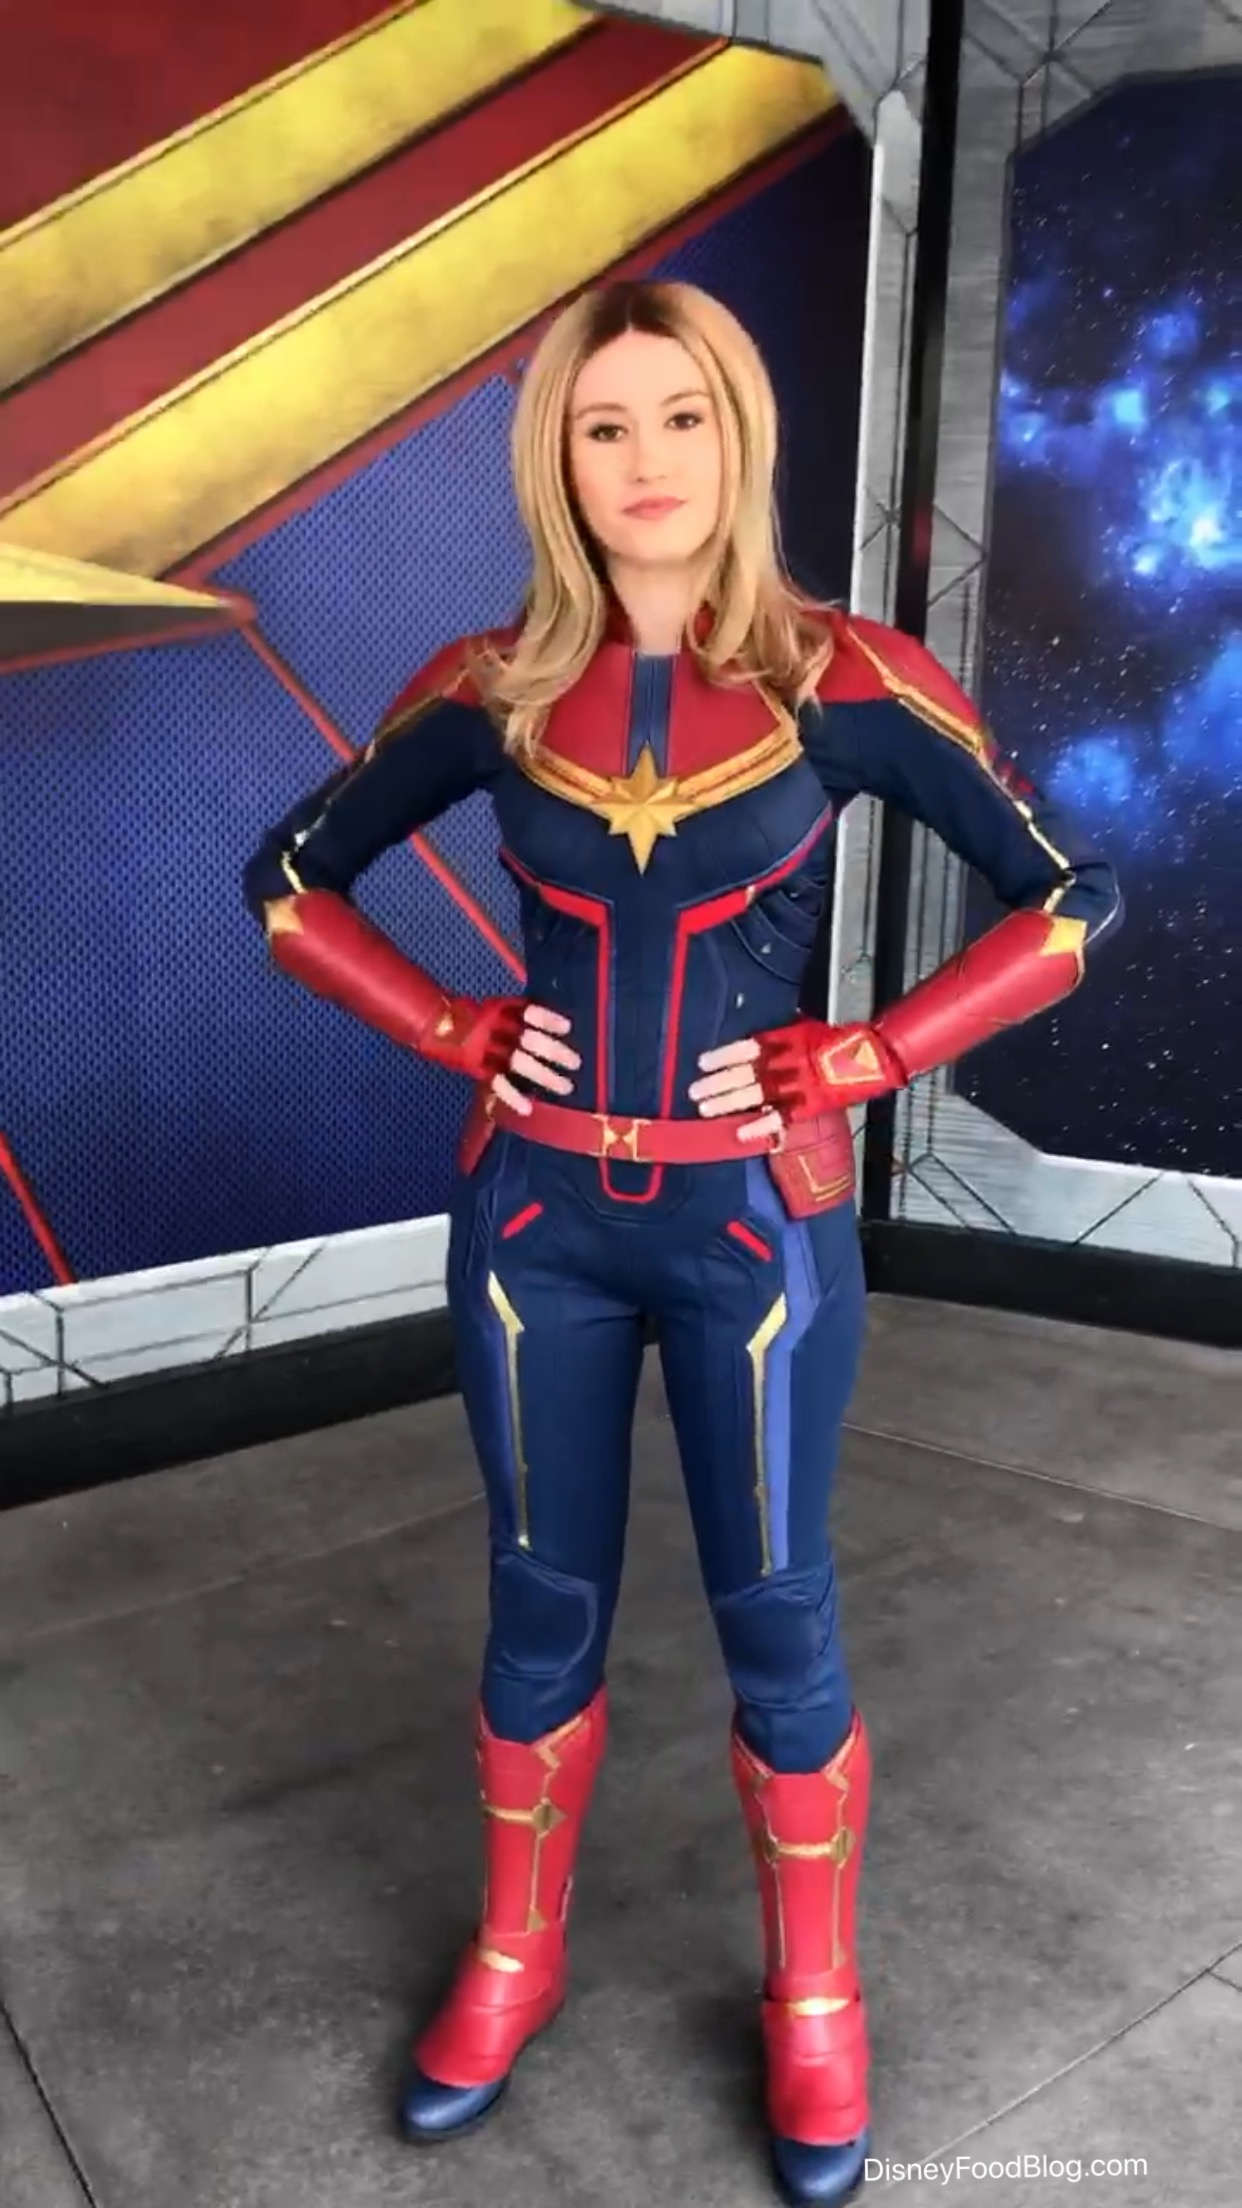 Captain Marvel Meet And Greet Now Available In Disney California Adventure The Disney Food Blog Marvel studios' captain marvel stars brie larson and is directed by the writing/directing team. disney food blog